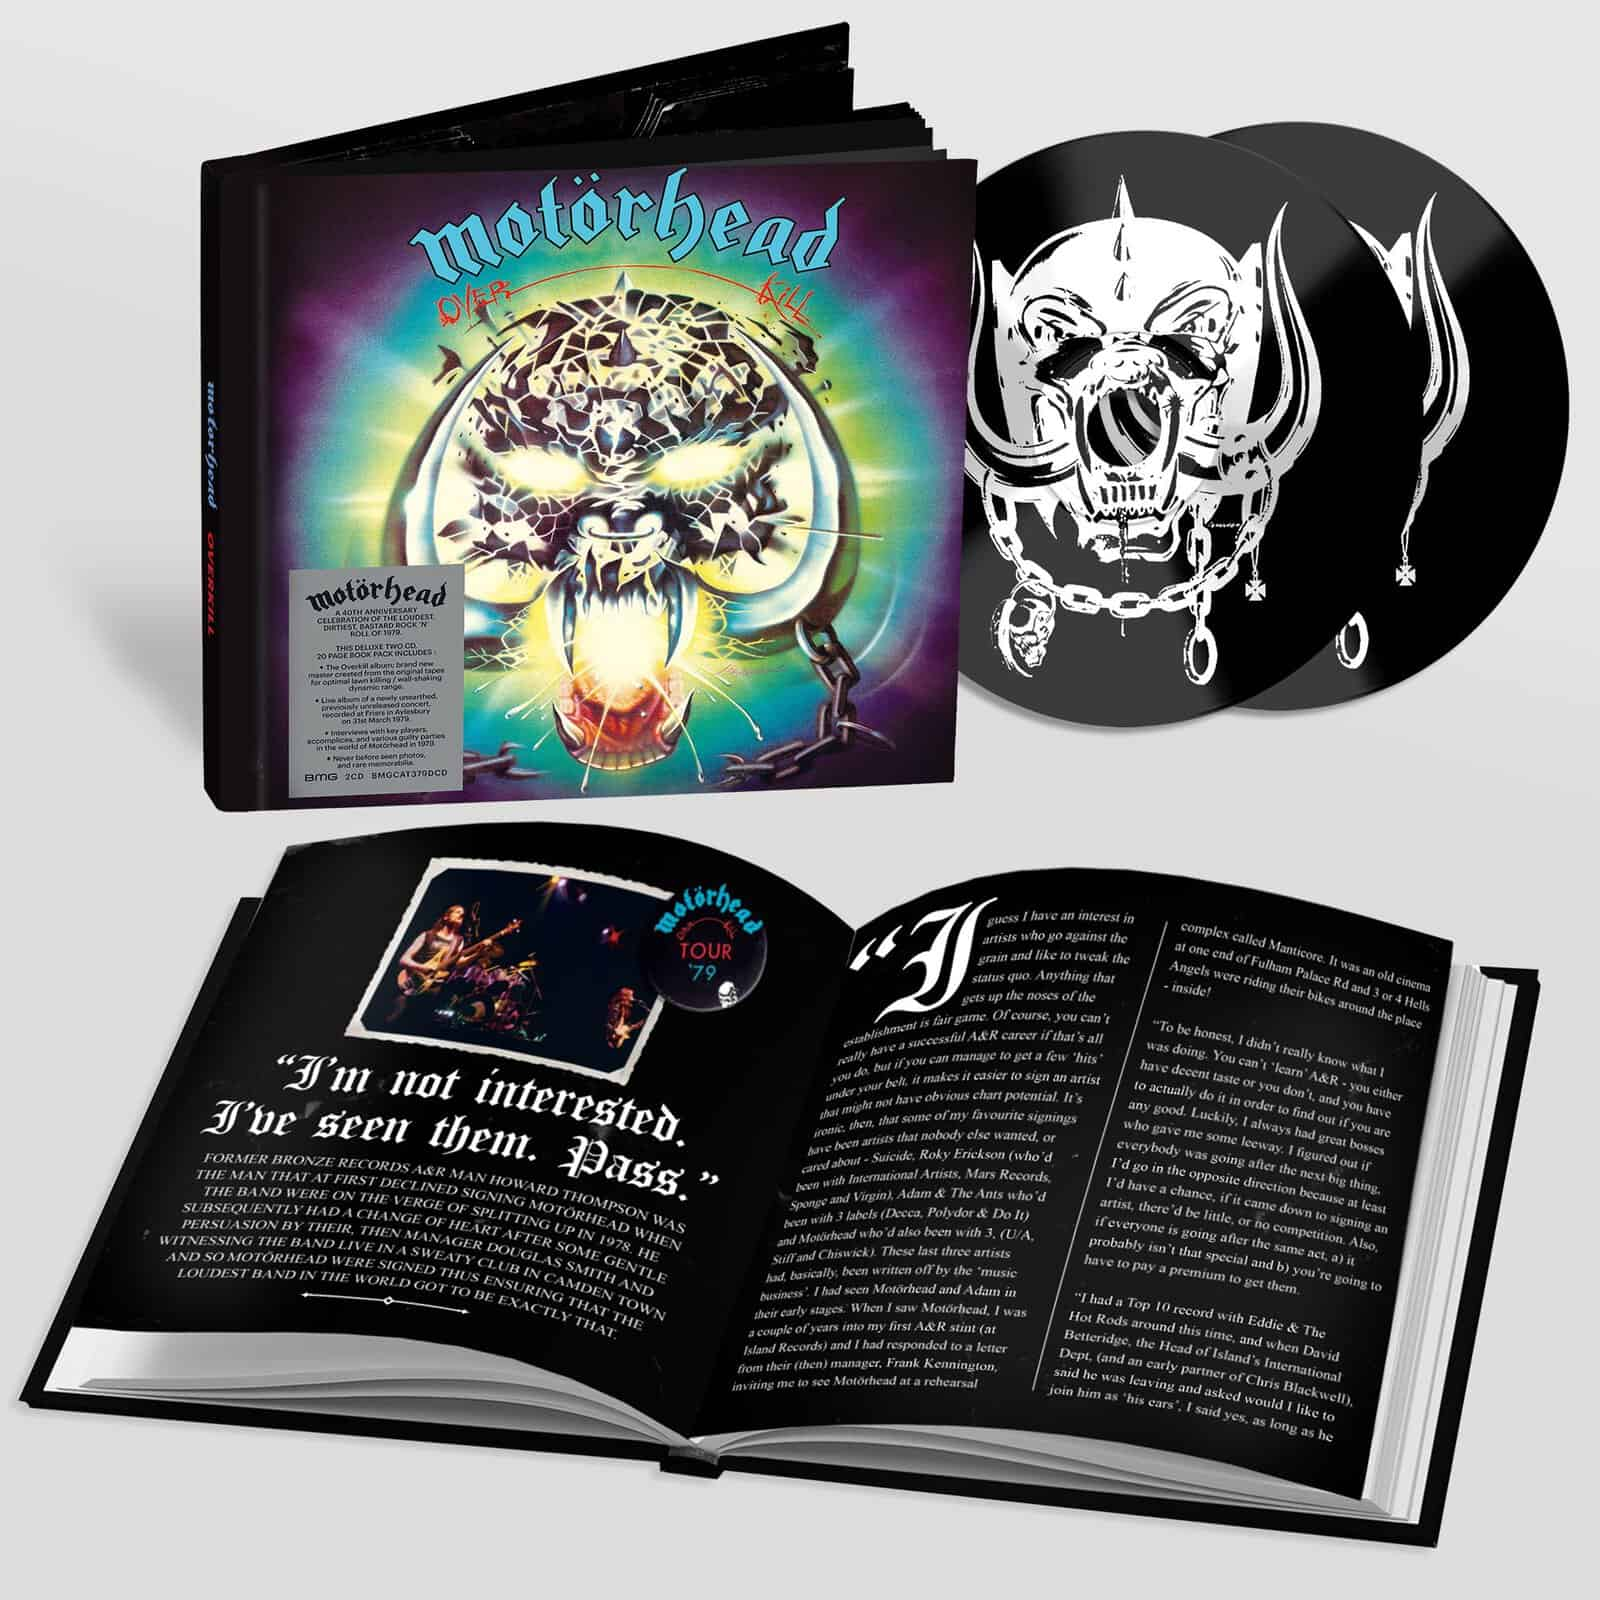 Overkill 40th Anniversary Deluxe 2 CD Edition